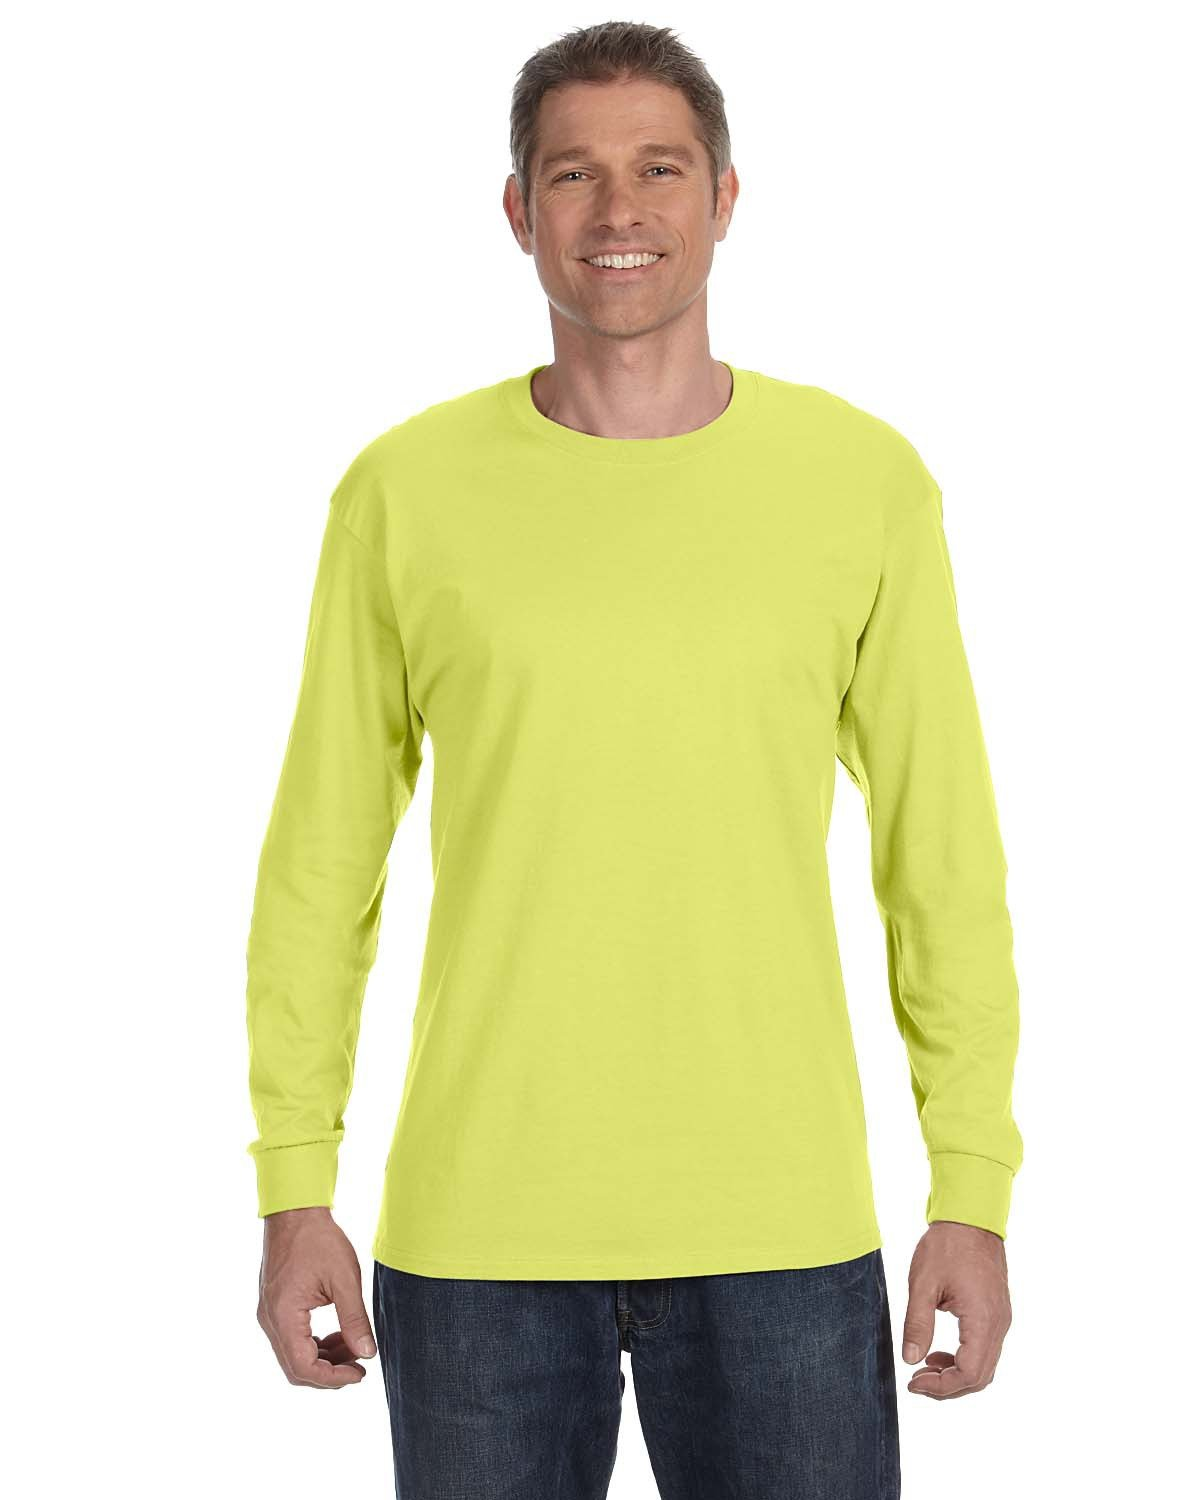 Jerzees Adult DRI-POWER® ACTIVE Long-Sleeve T-Shirt SAFETY GREEN